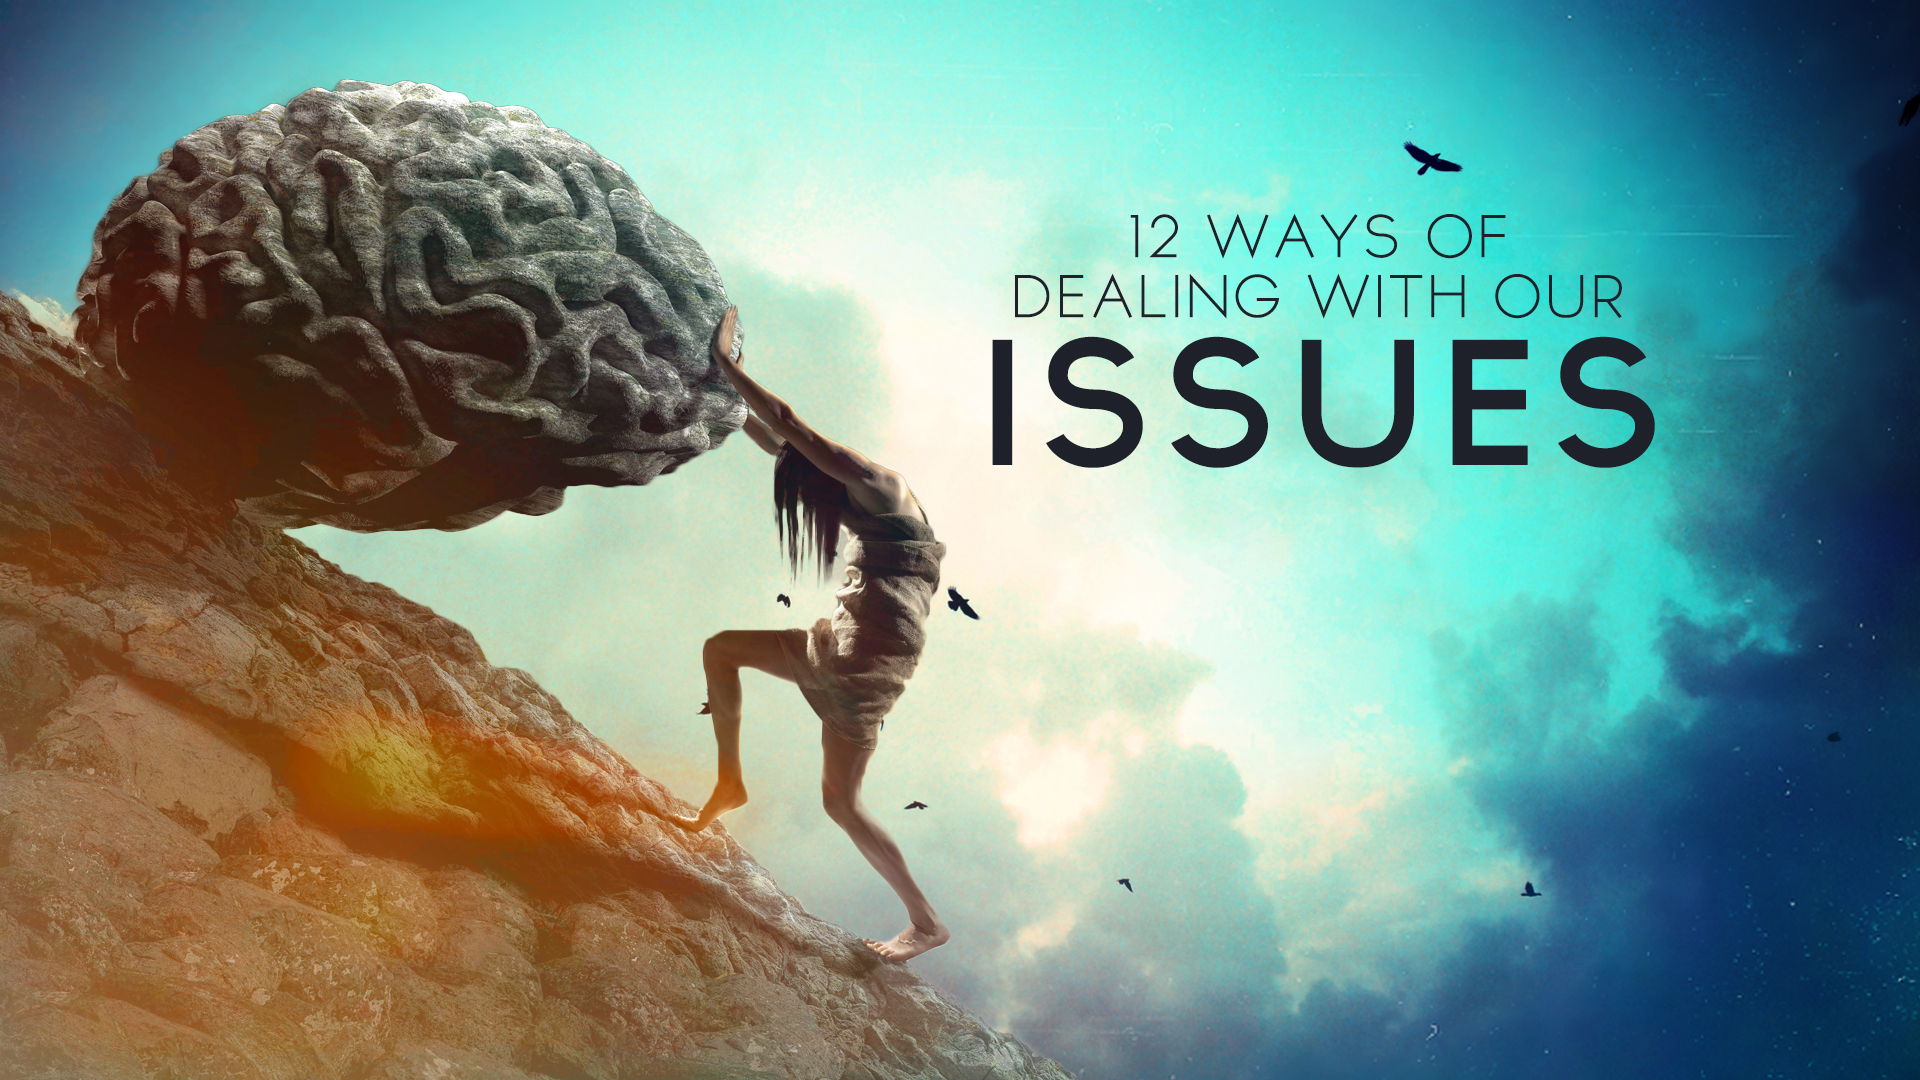 12 Ways of Dealing With Our Issues